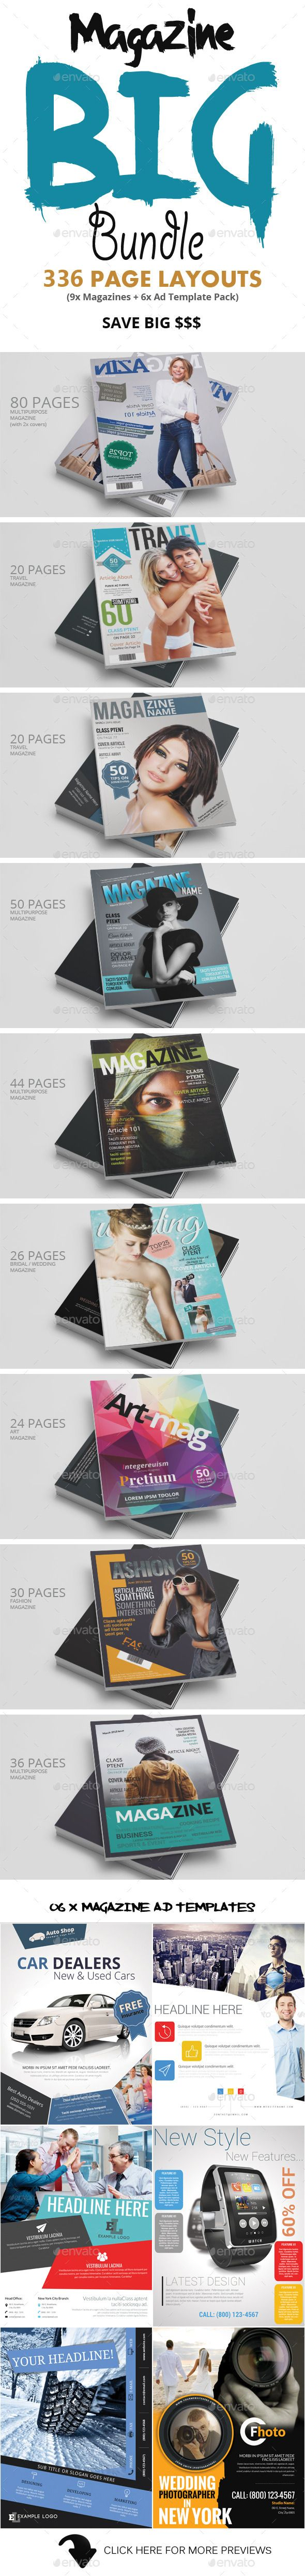 Photoshop Magazine Big Bundle by pmvch 9x Magazines   6x Magazine Ad Template Pack (10x Items worth $178)This is a Photoshop Magazine Template bundle containing 9x maga